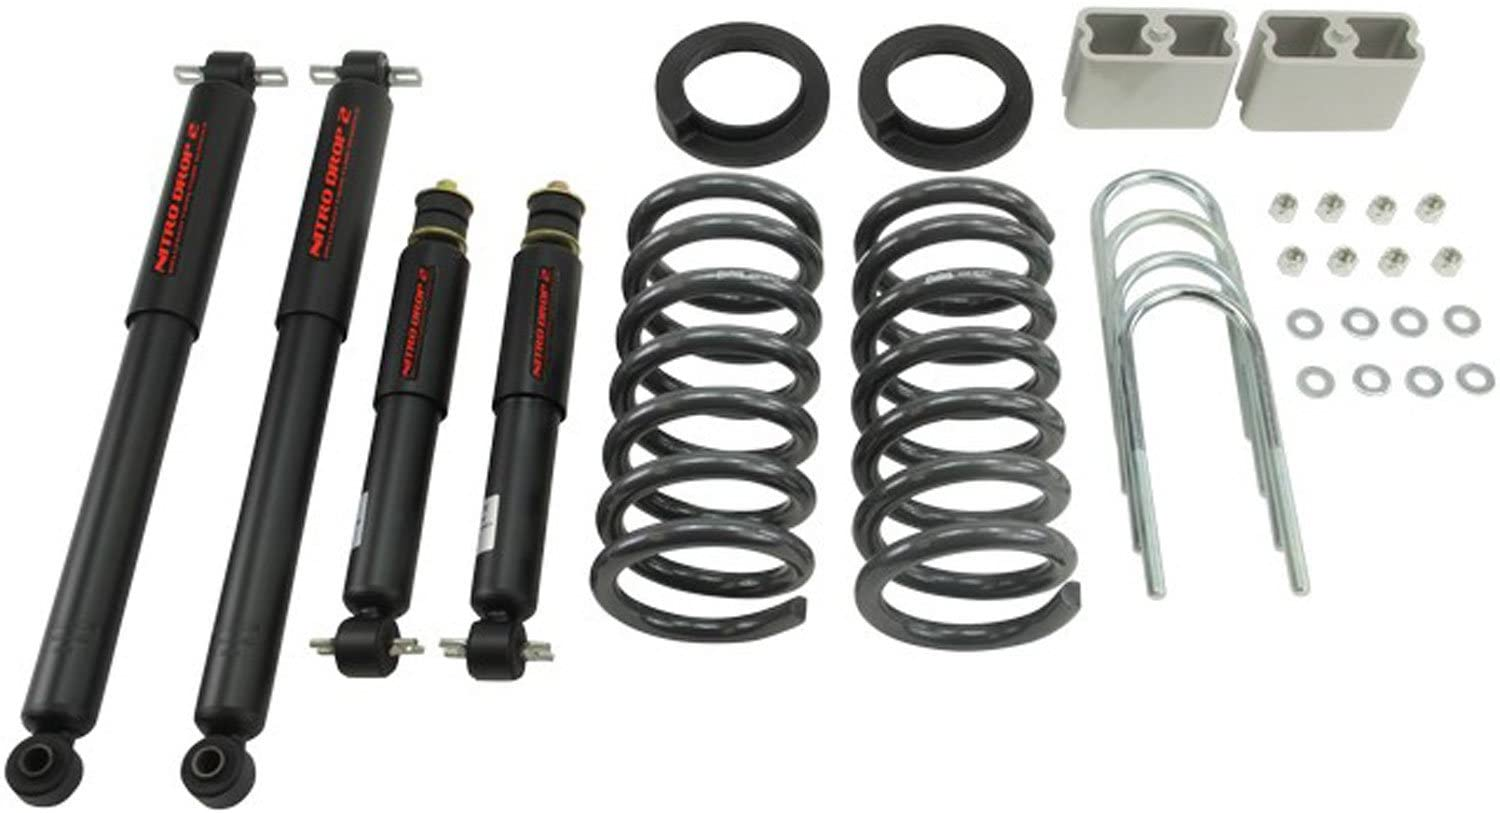 Belltech 621ND Lowering Kit with Nitro Drop 2 Shocks